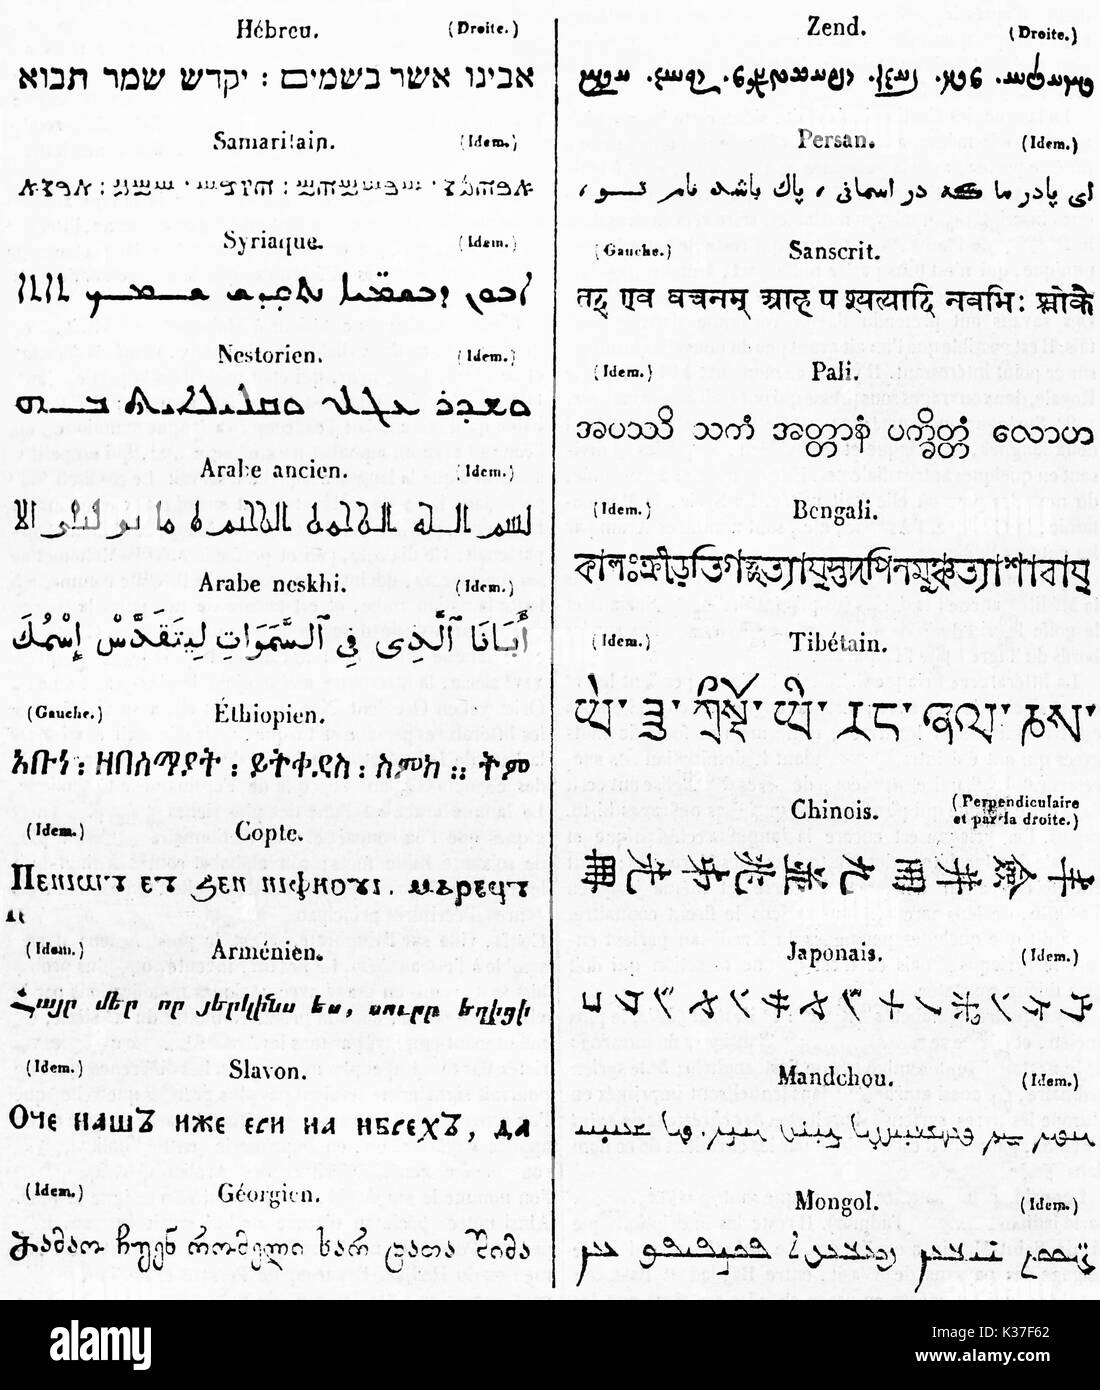 Ancient table list of exotic alphabets, black fonts on white paper. Published on Magasin Pittoresque Paris 1834 - Stock Image